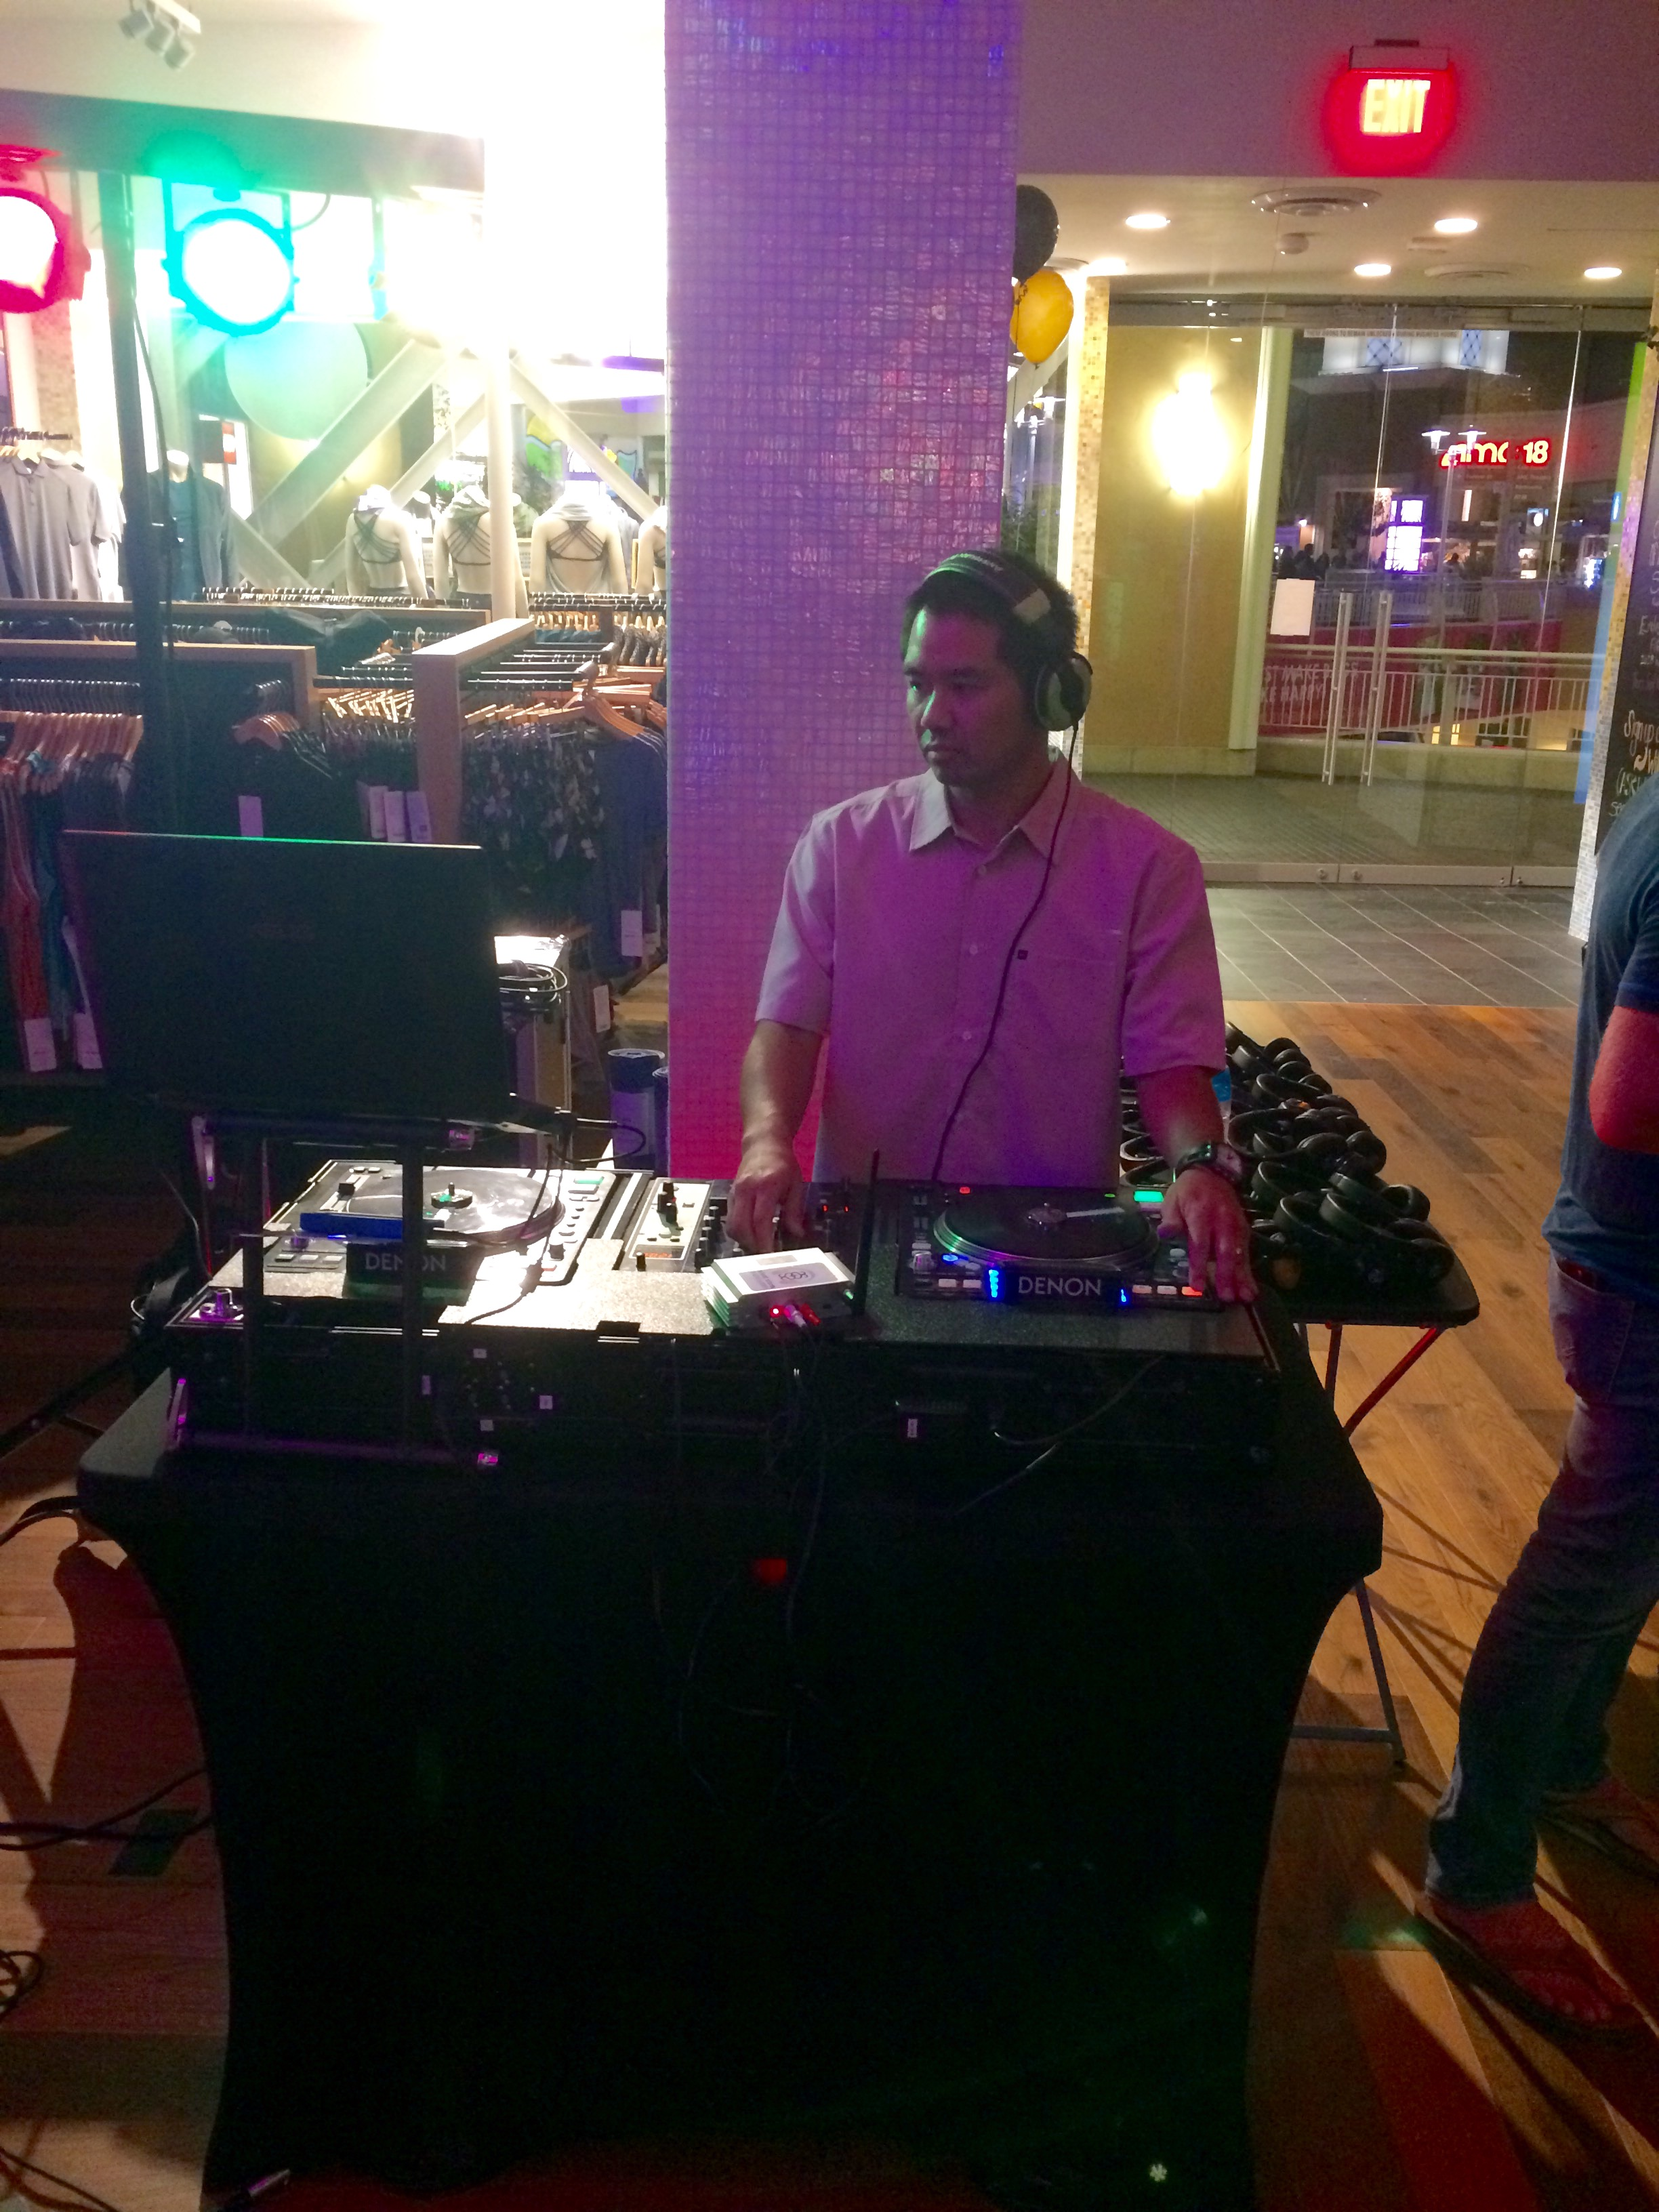 Providing music for Lululemon Fashion Valley's one year anniversary.